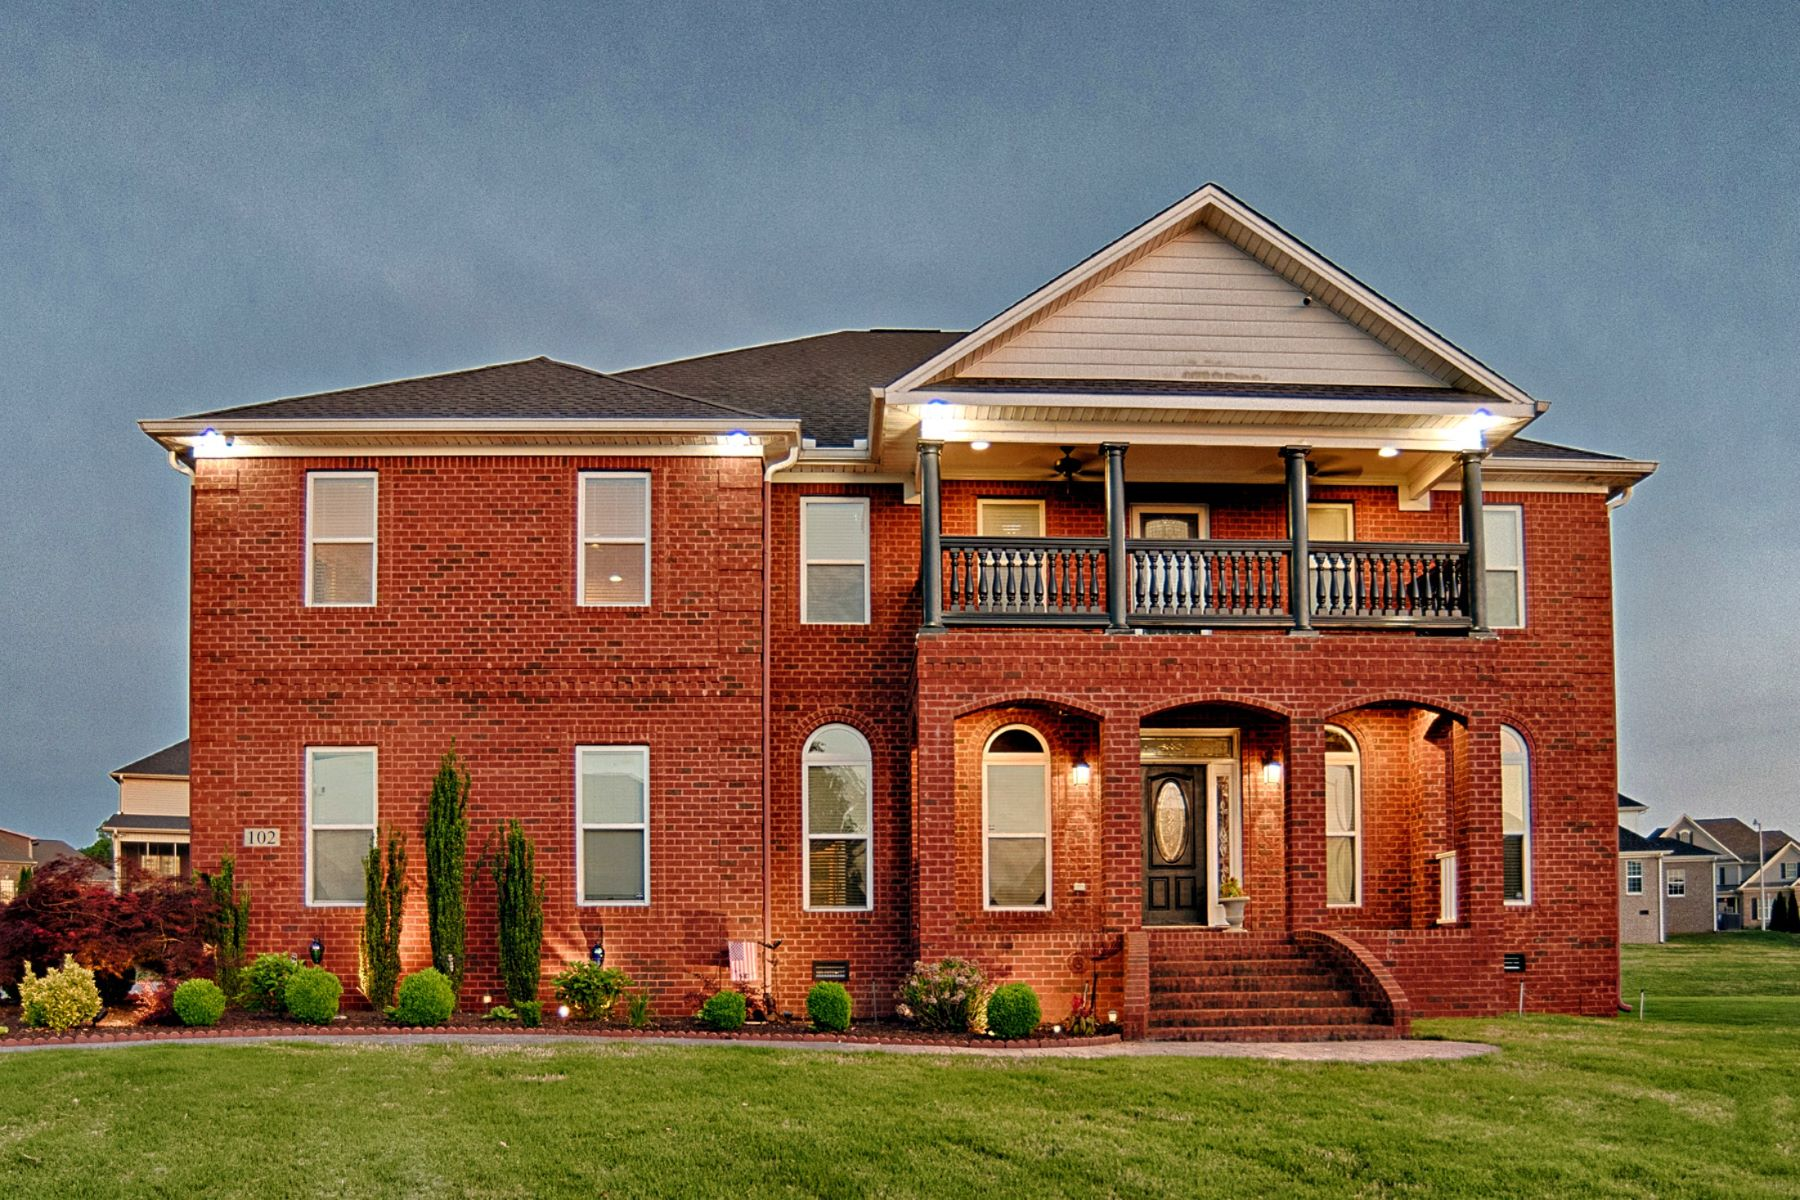 Single Family Home for Active at 102 Springhaven Drive Madison, Alabama 35757 United States